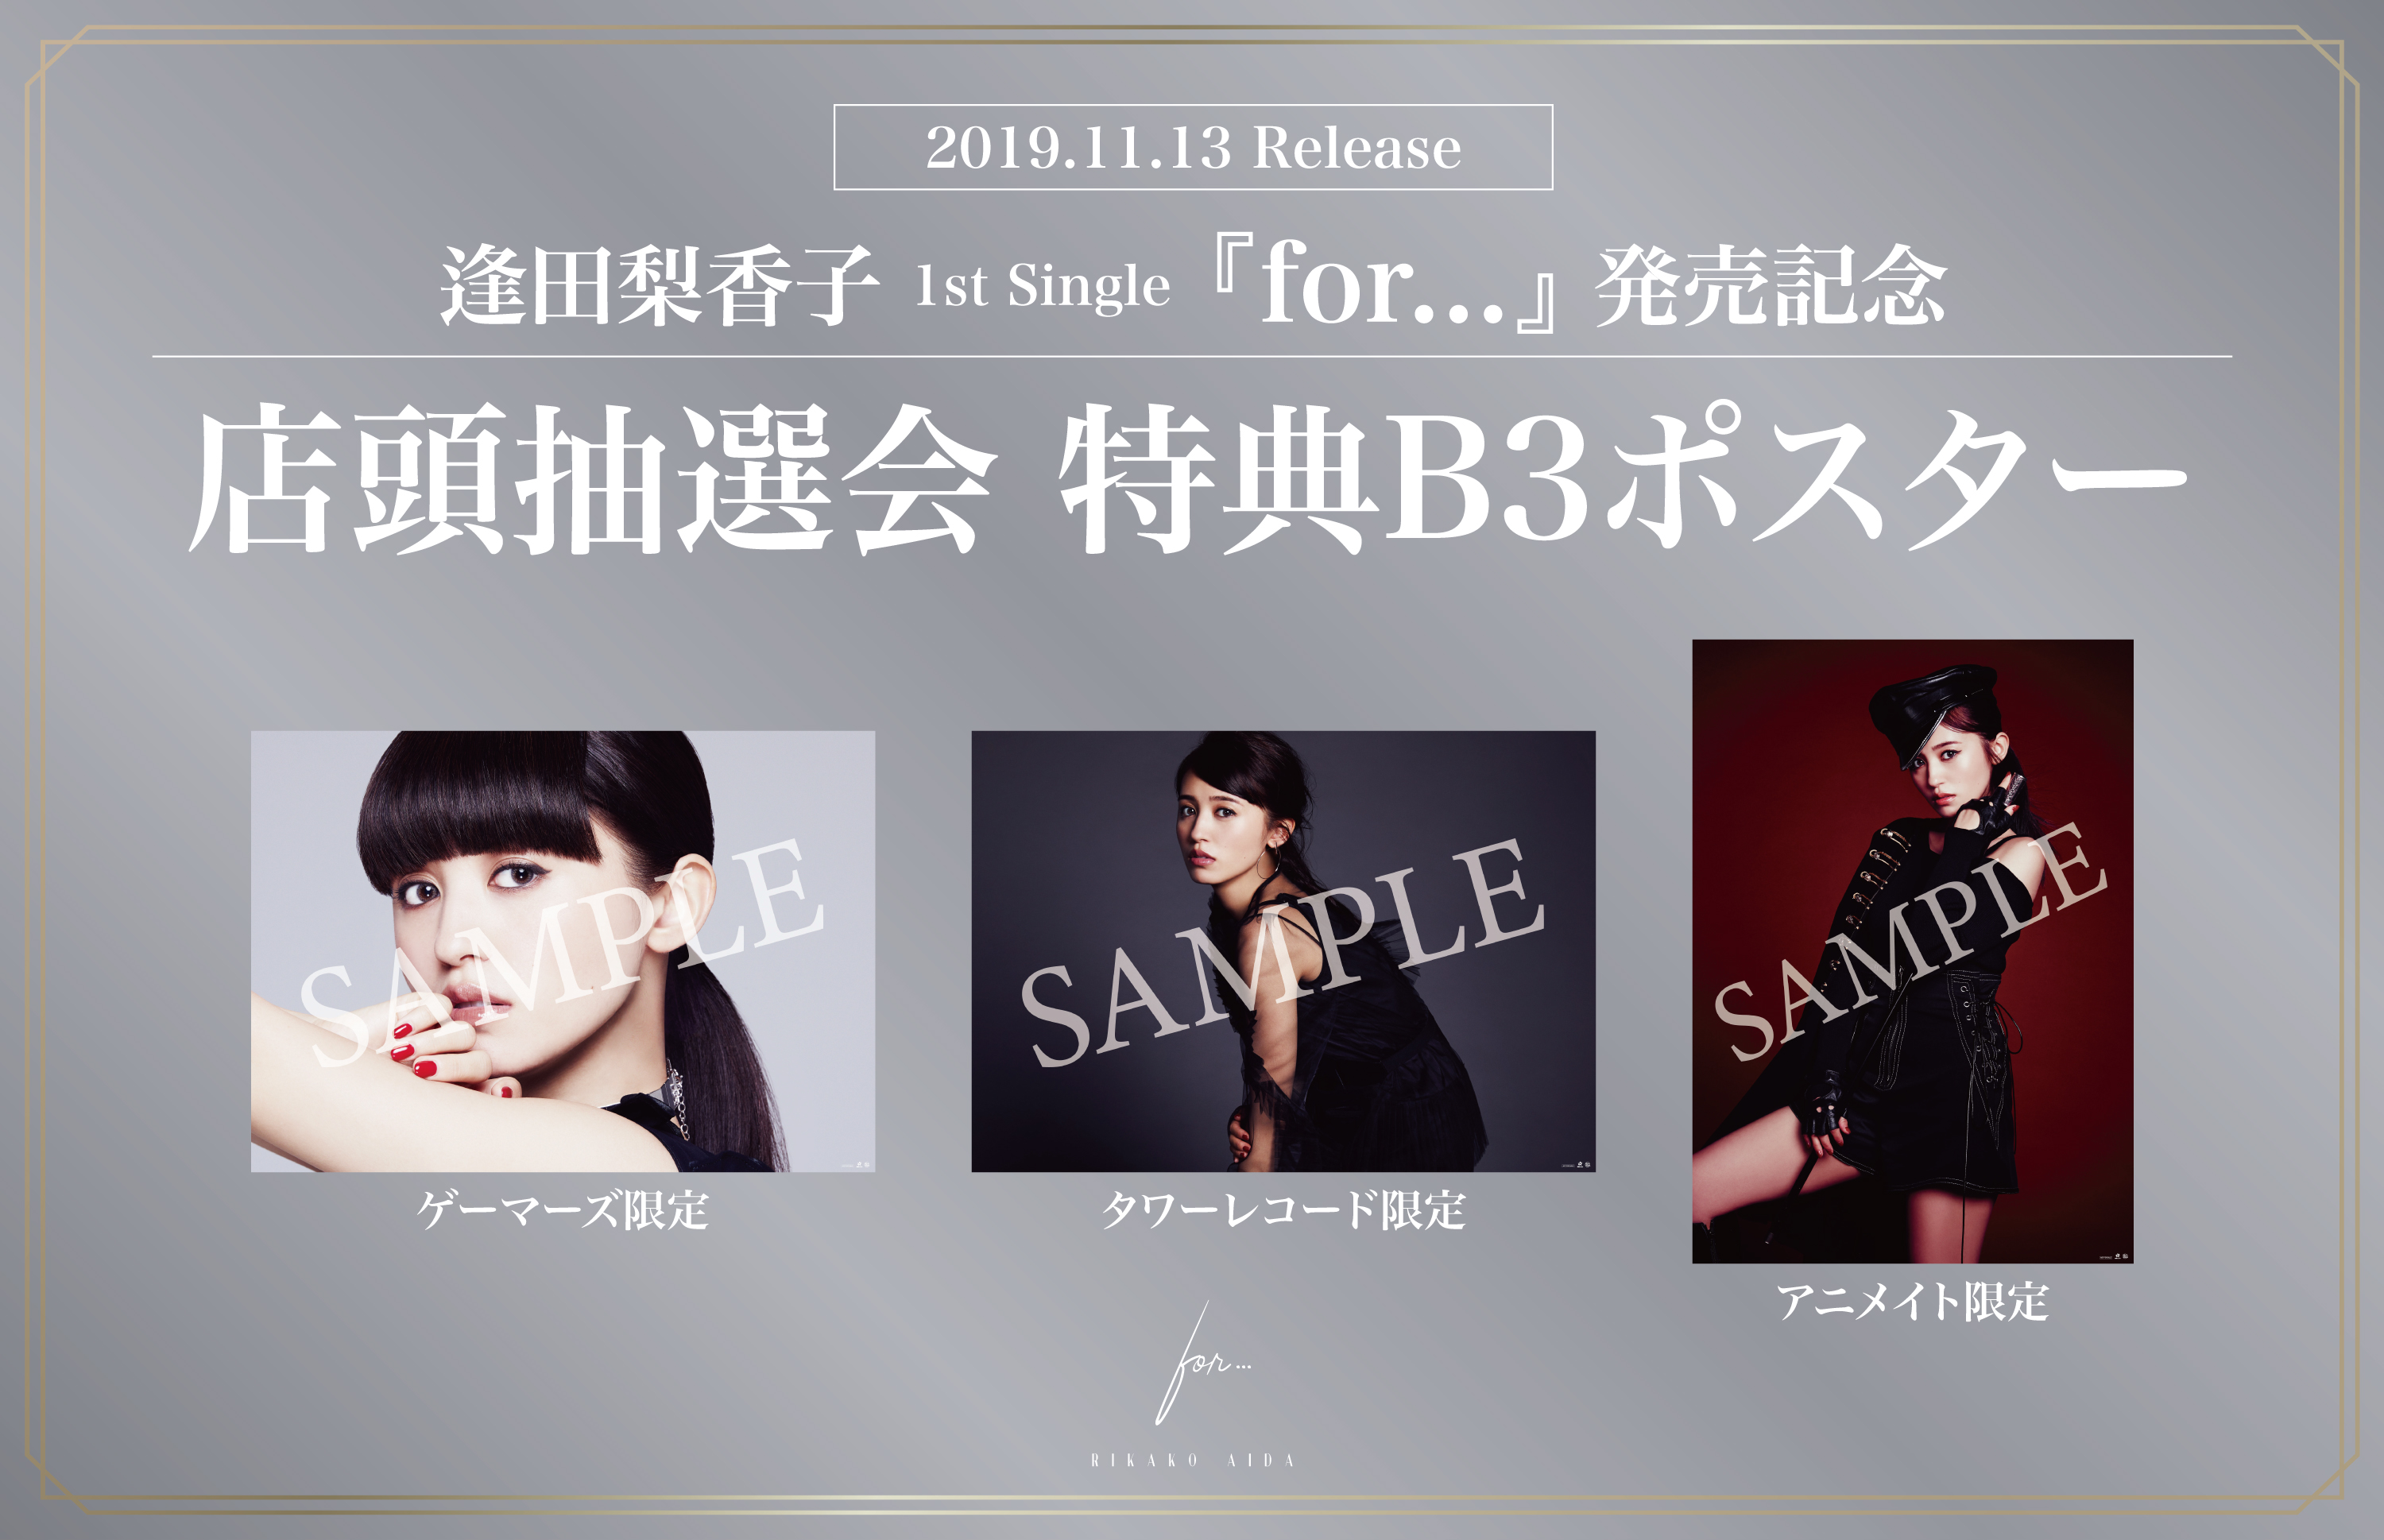 1st Single「for...」 発売記念 店頭抽選会の開催が決定!